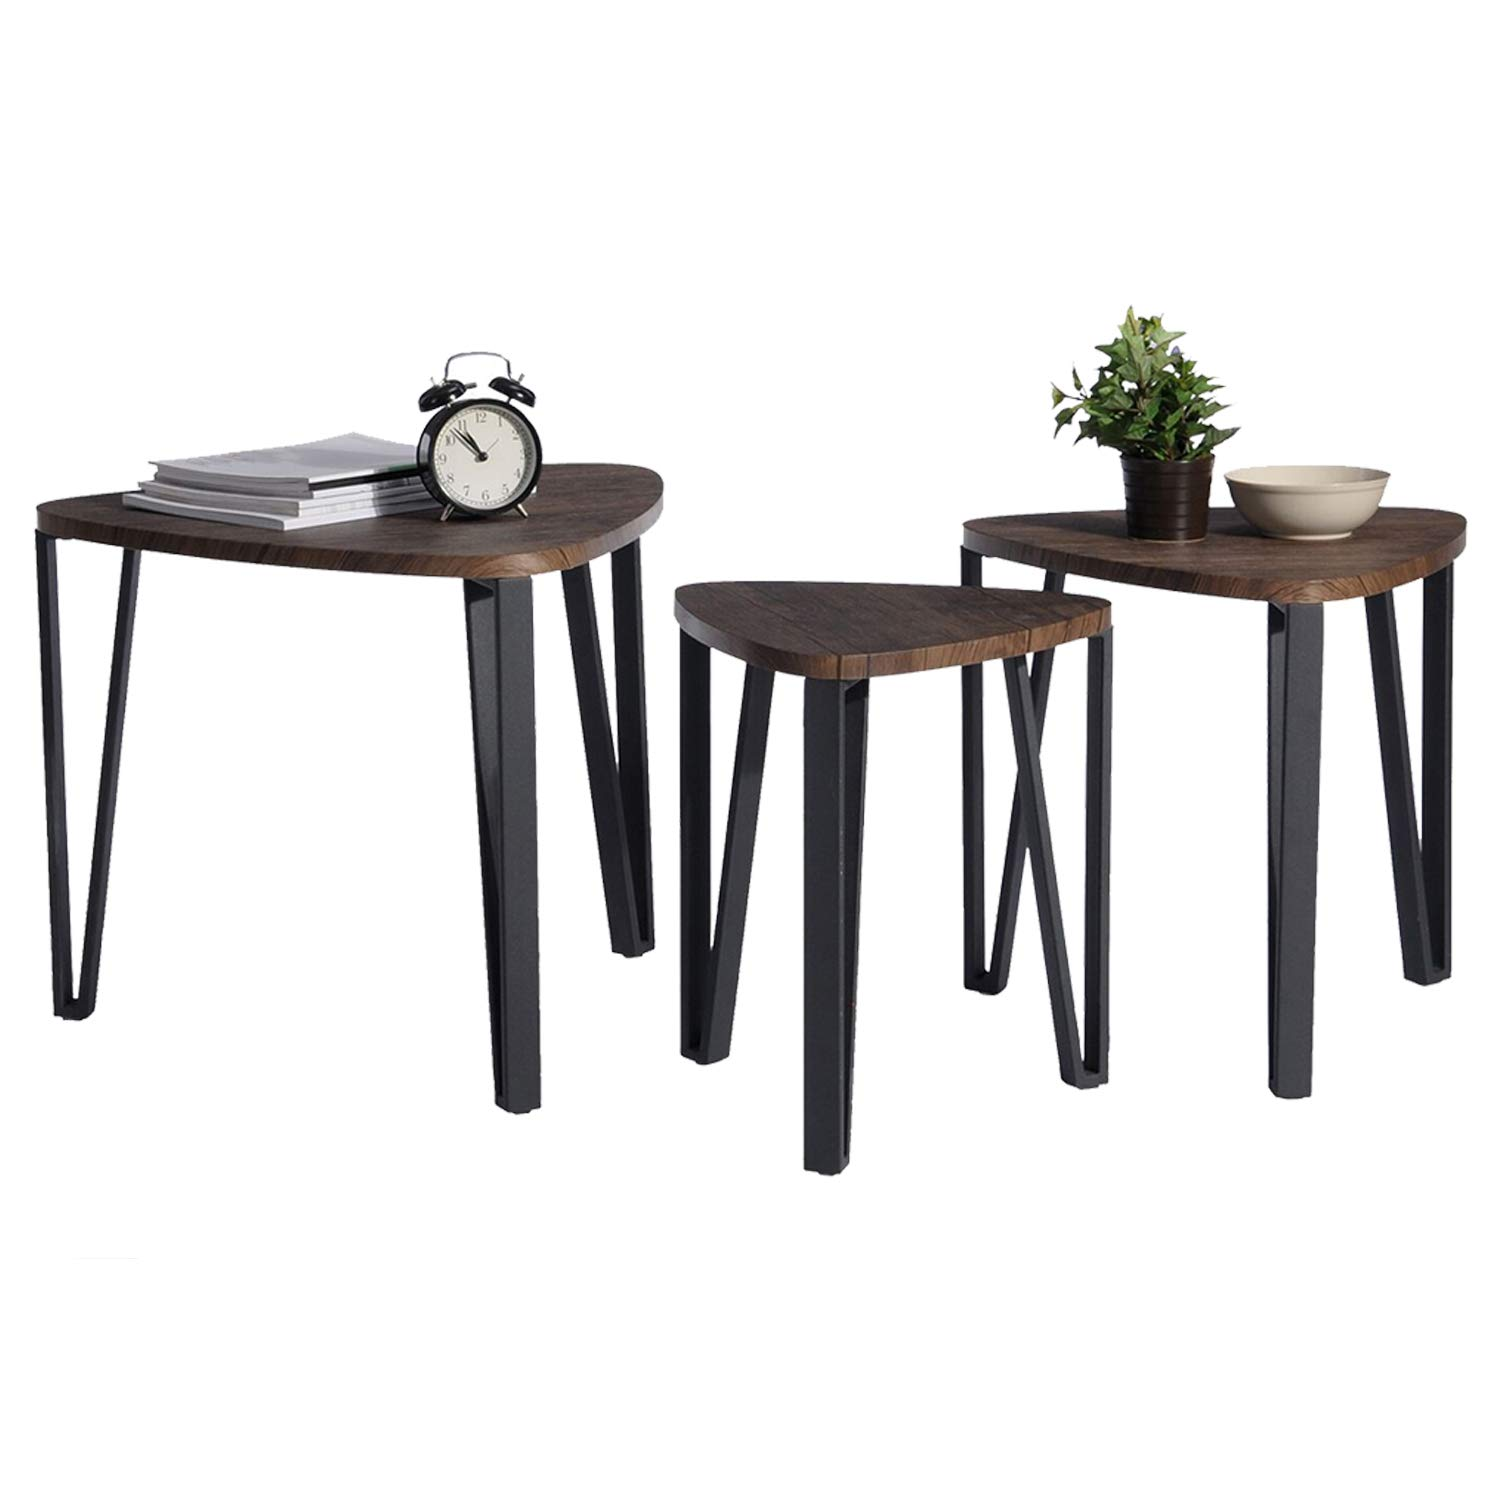 coavas vintage nesting coffee table set for living room accent legs industrial stacking end side leisure wood night stand telephone home office receving inch square tablecloth